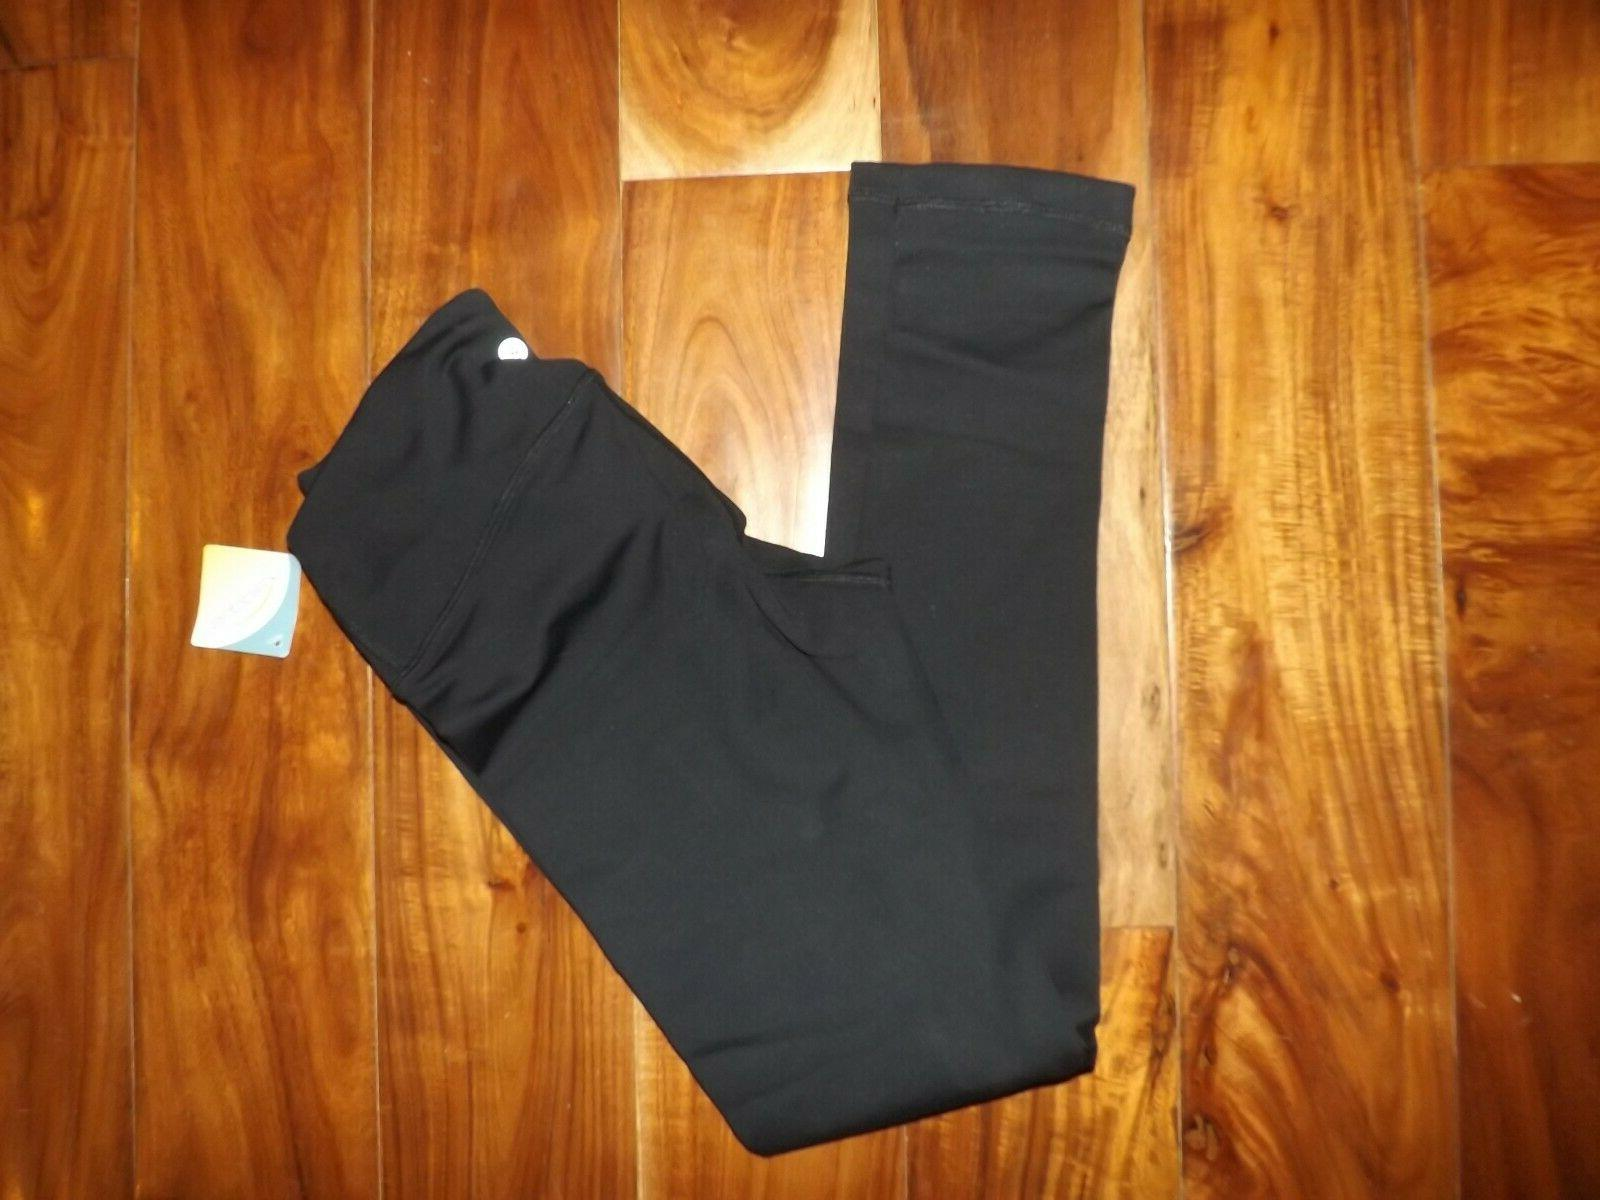 NWT Womens BY REFLEX Black Active Exercise Running L